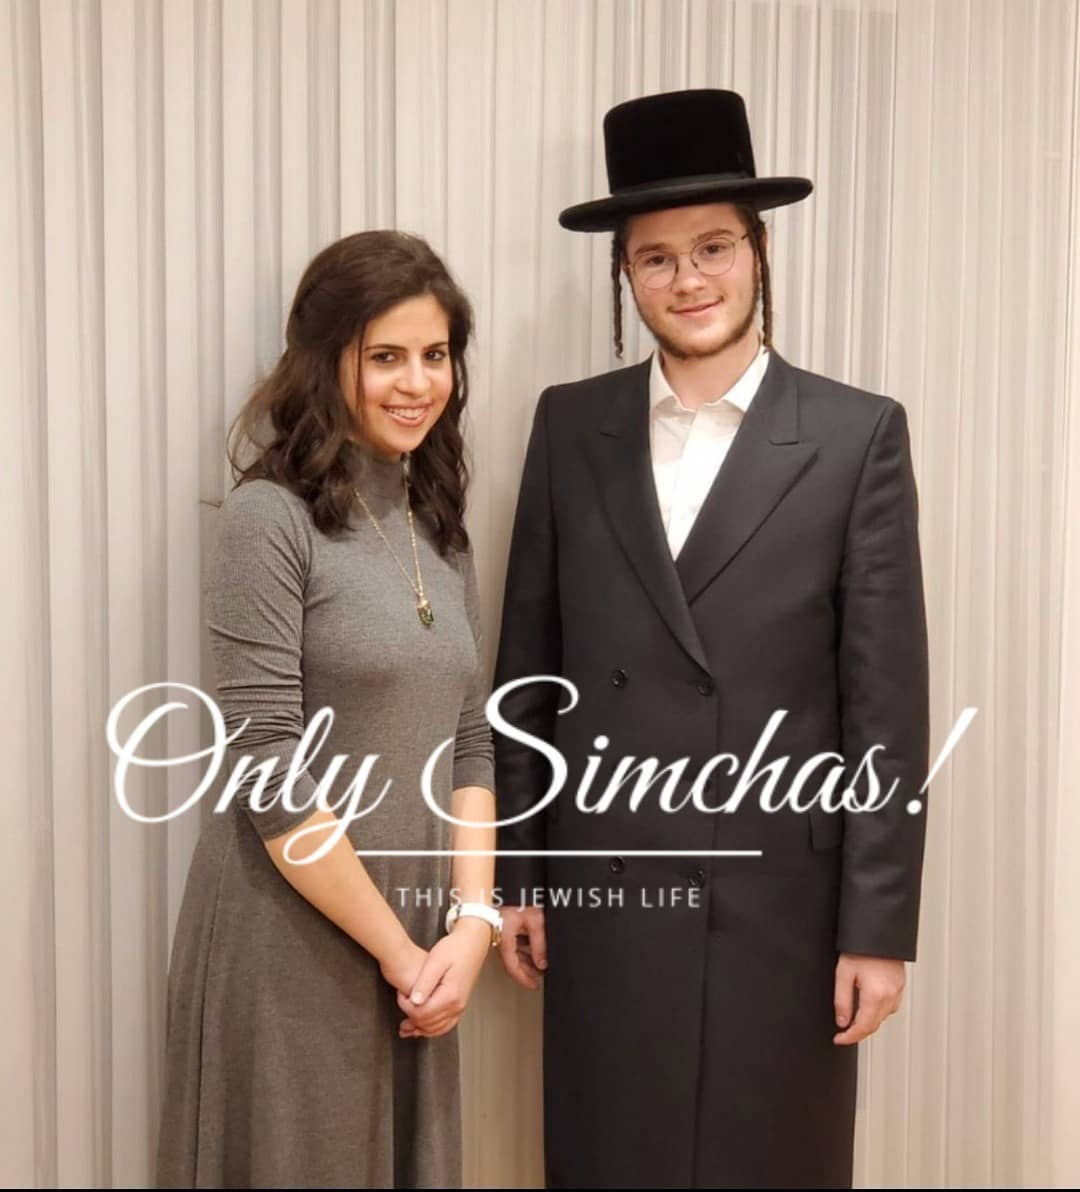 Engagement Of Nussy Greenfield & Rechie Lax! #onlysimchas